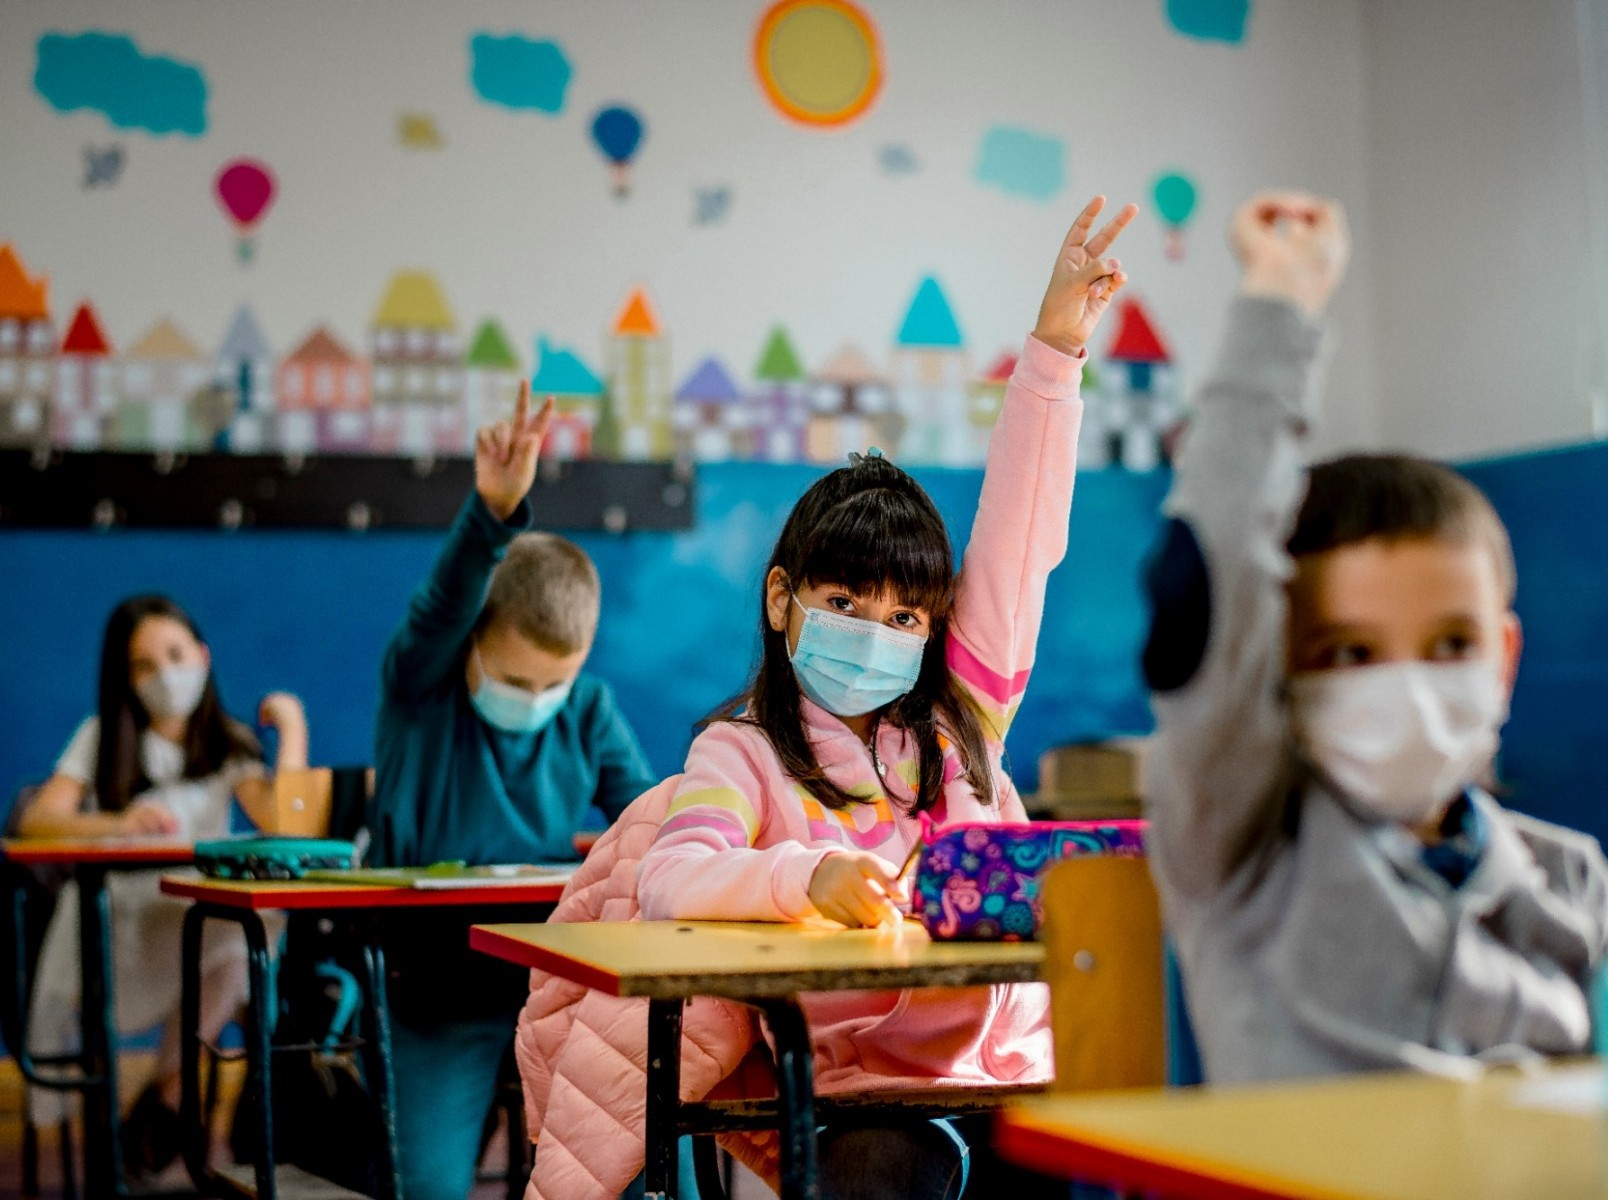 Kids wearing face masks raising their hands in an elementary school classroom. Photo by kevajefimija/Getty Images